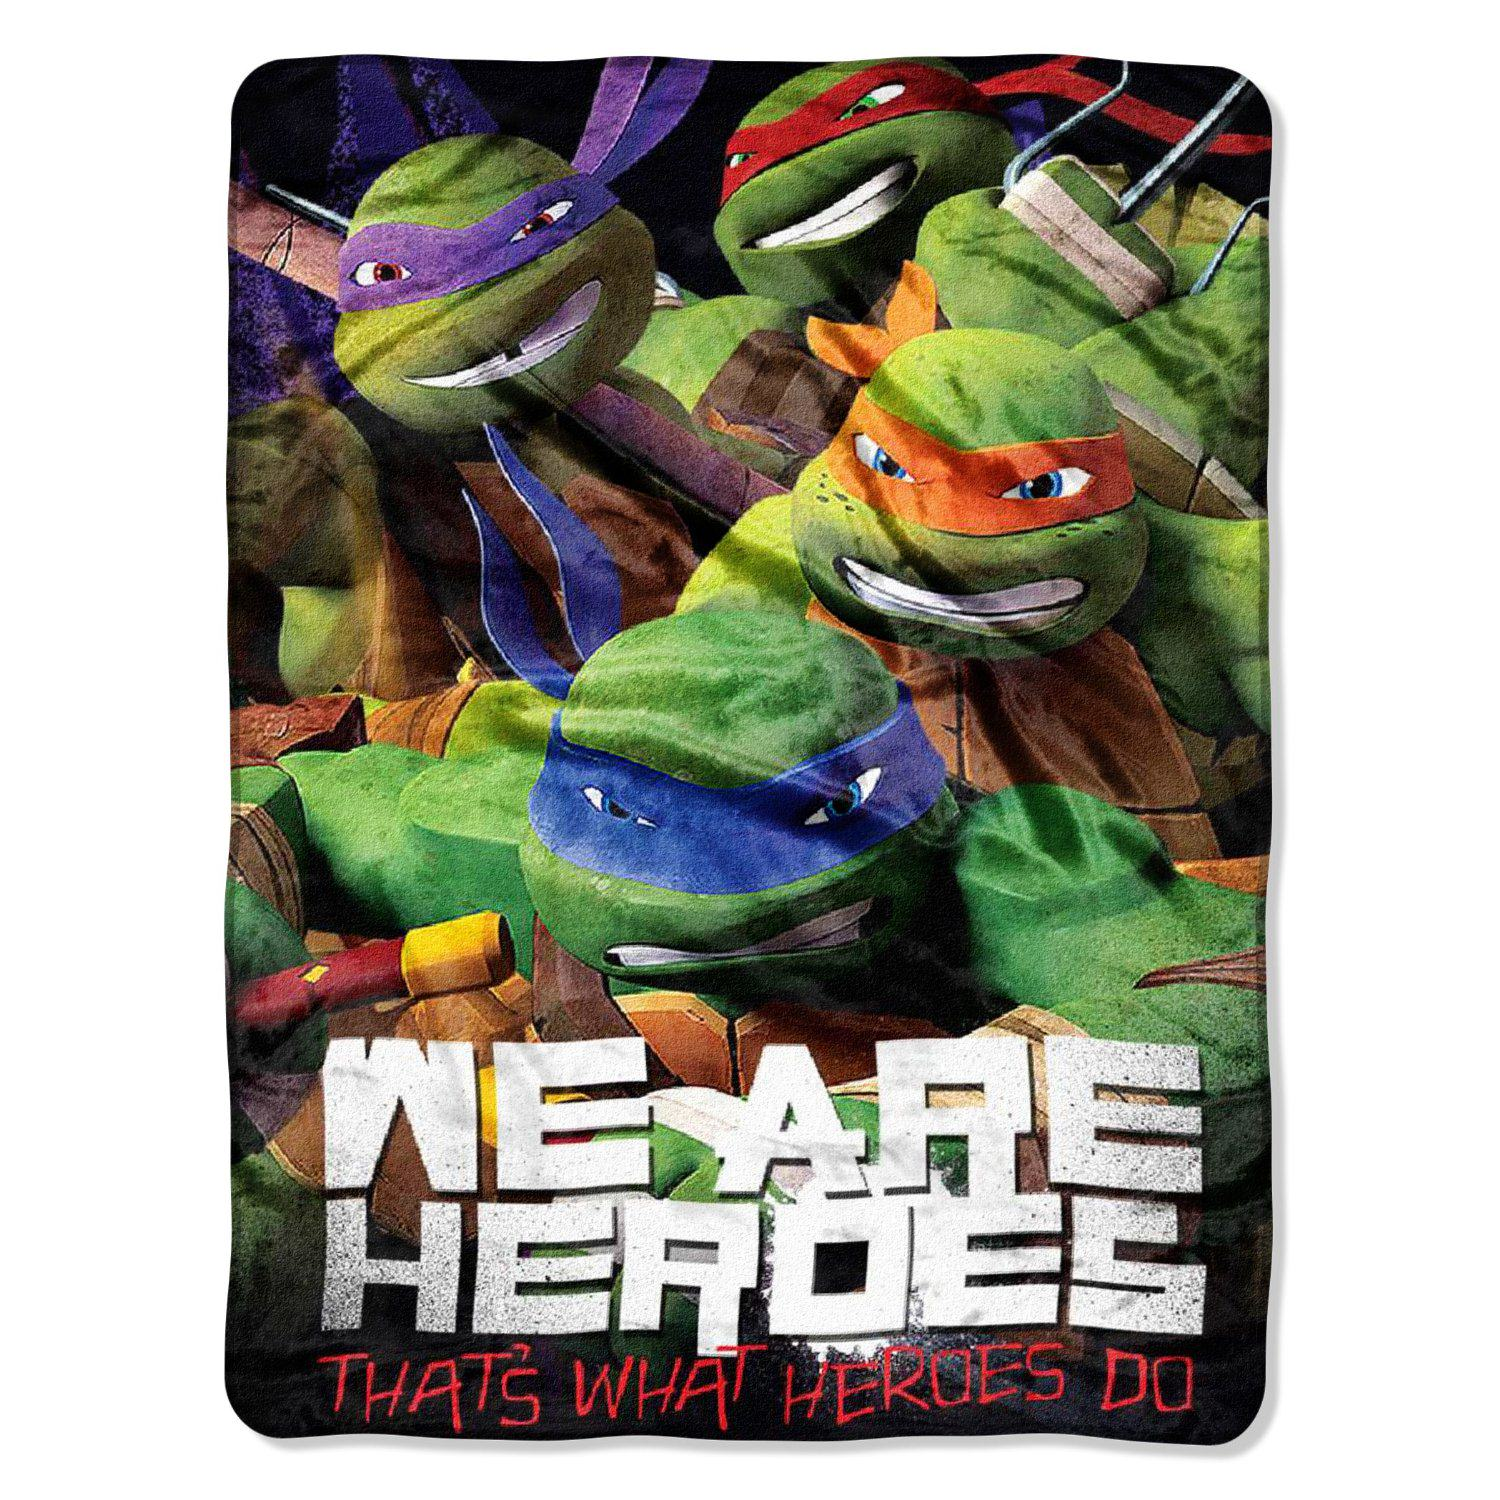 Teenage Mutant Ninja Turtles Blankets - The Blanket Store